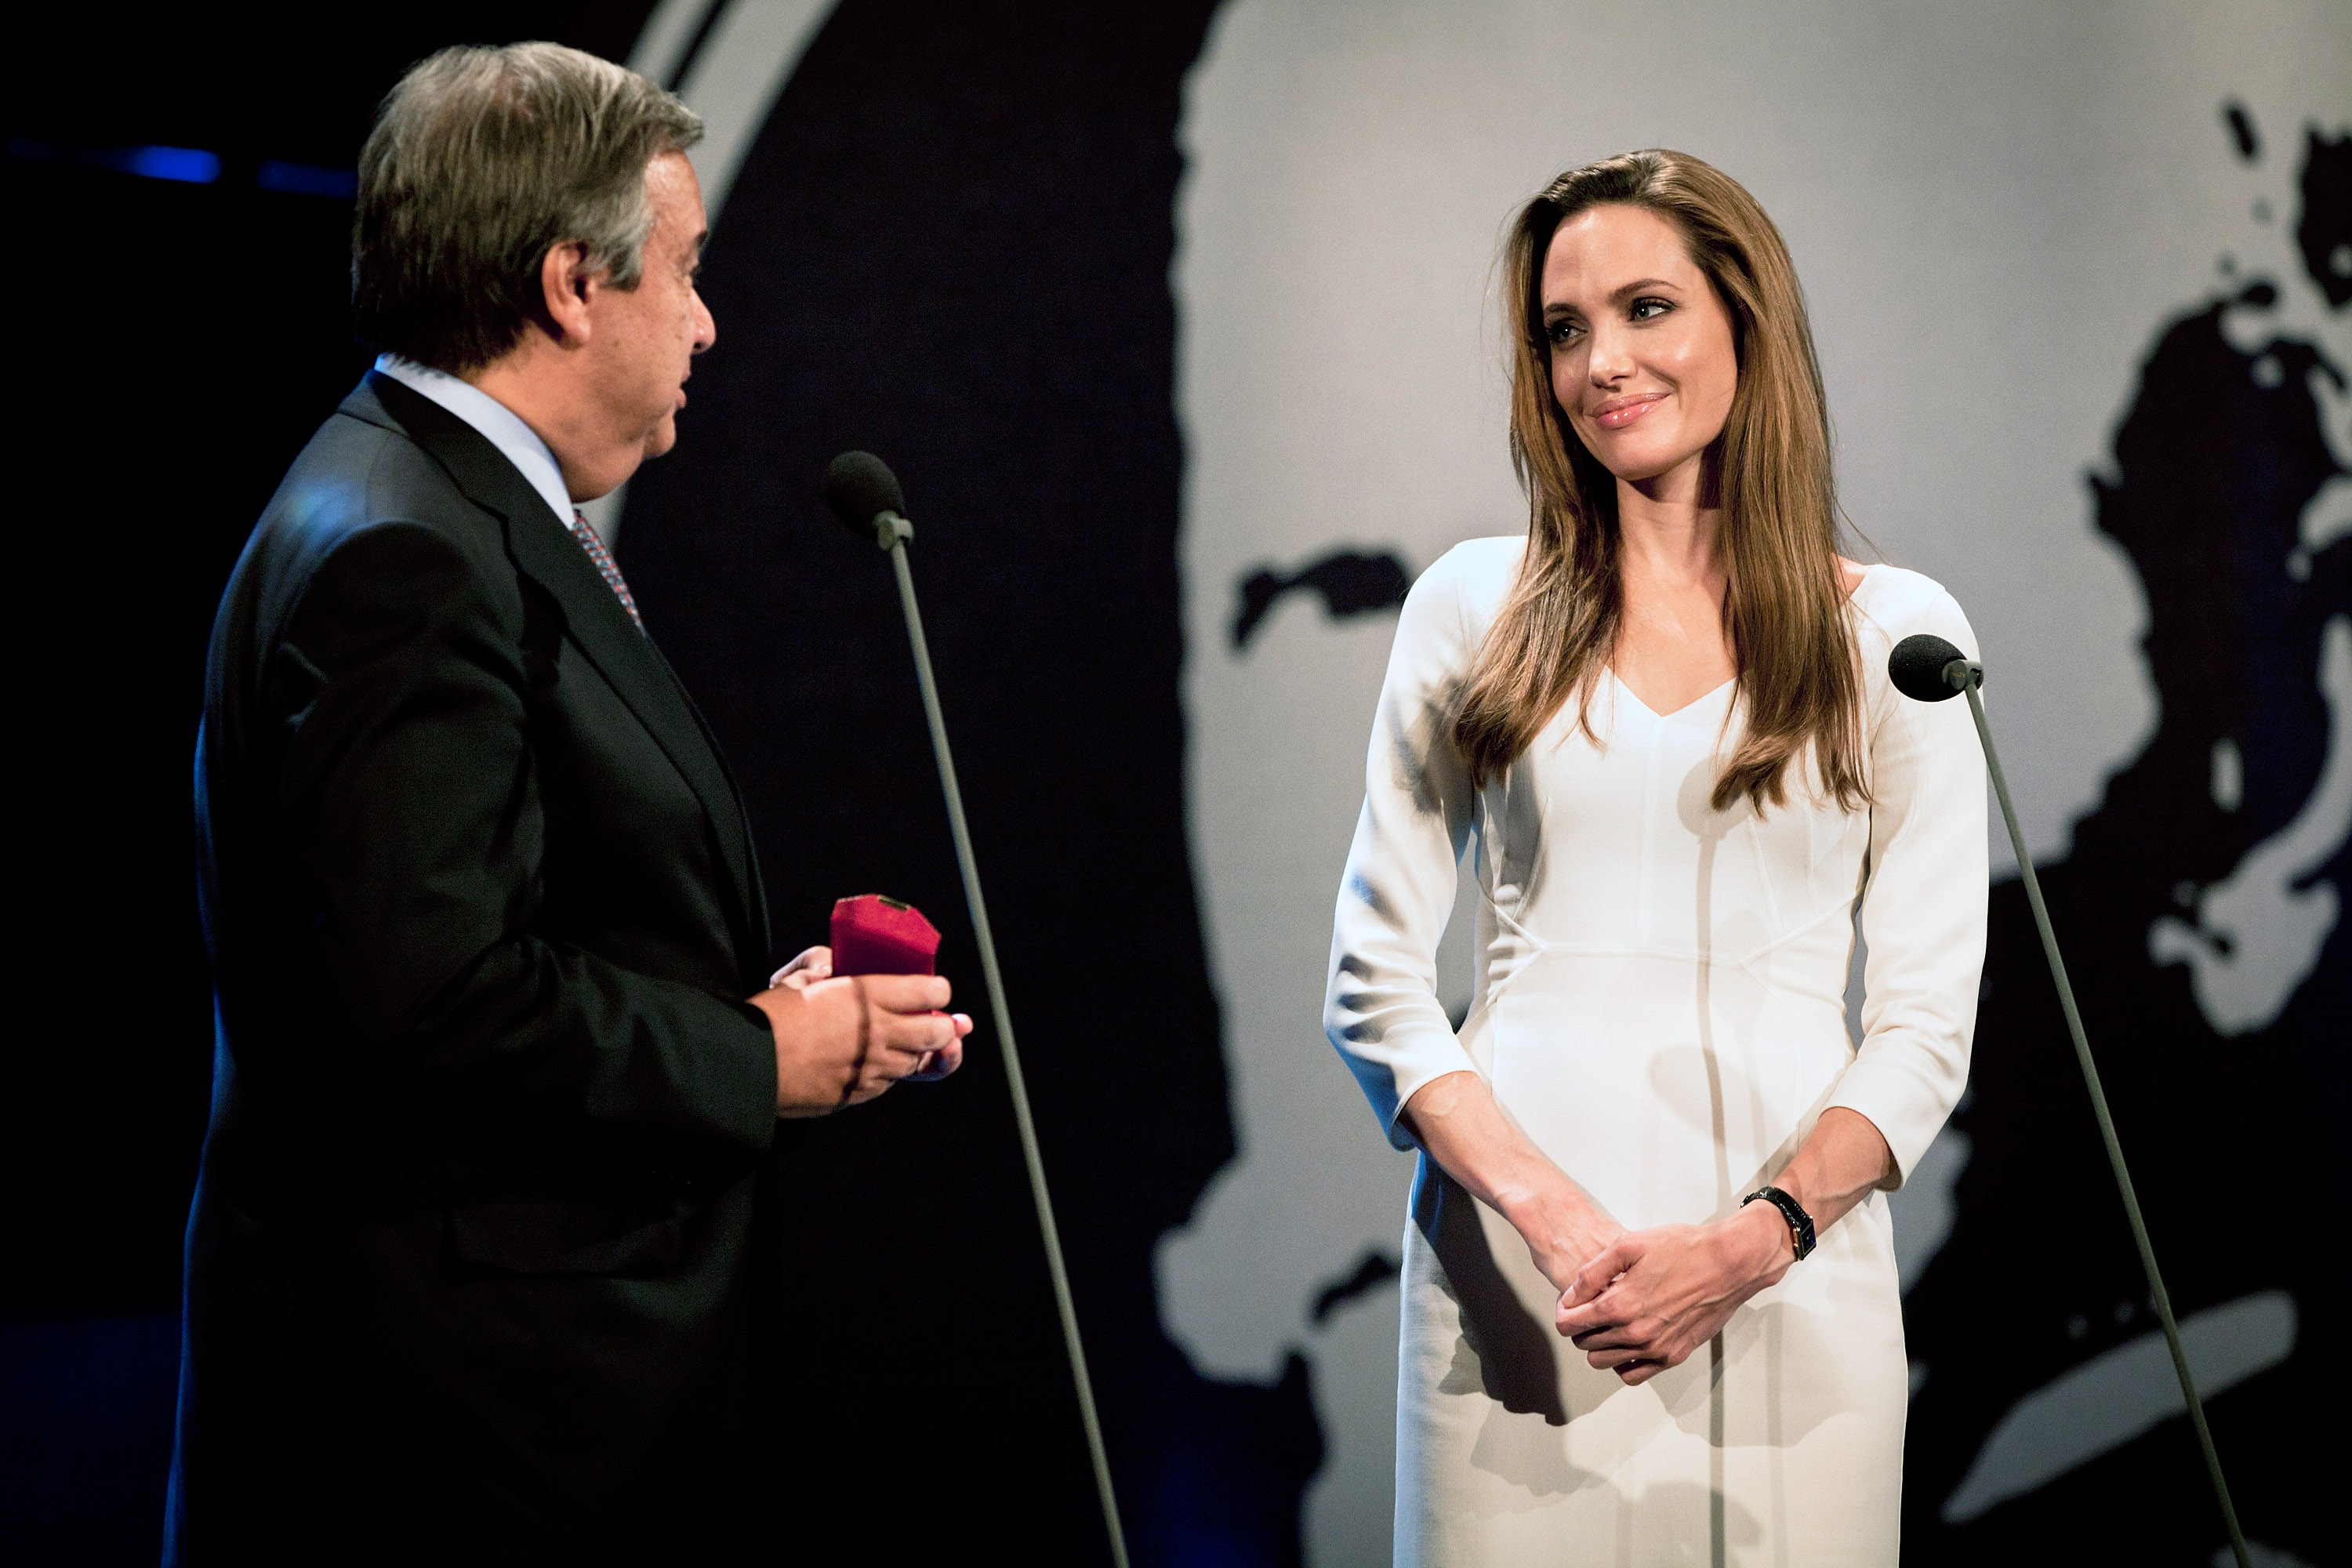 Angelina Jolie at UNHCR event in Geneva.